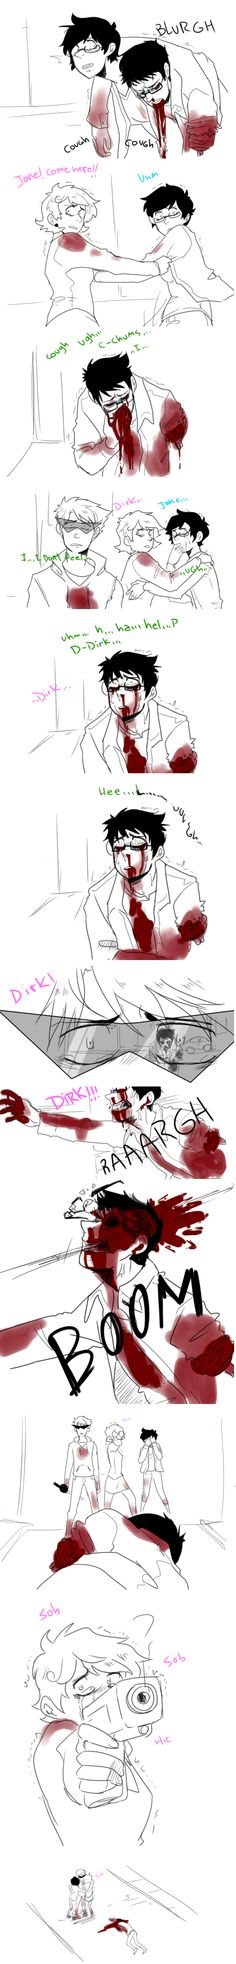 Nope nope noppppeeee -flips a table- done with sad pictures. I hope you happy I am crying now! Homestuck Comic, Cry Now, Home Stuck, And So It Begins, Sad Pictures, Stuff To Do, Cool Stuff, My Heart Is Breaking, Creepypasta